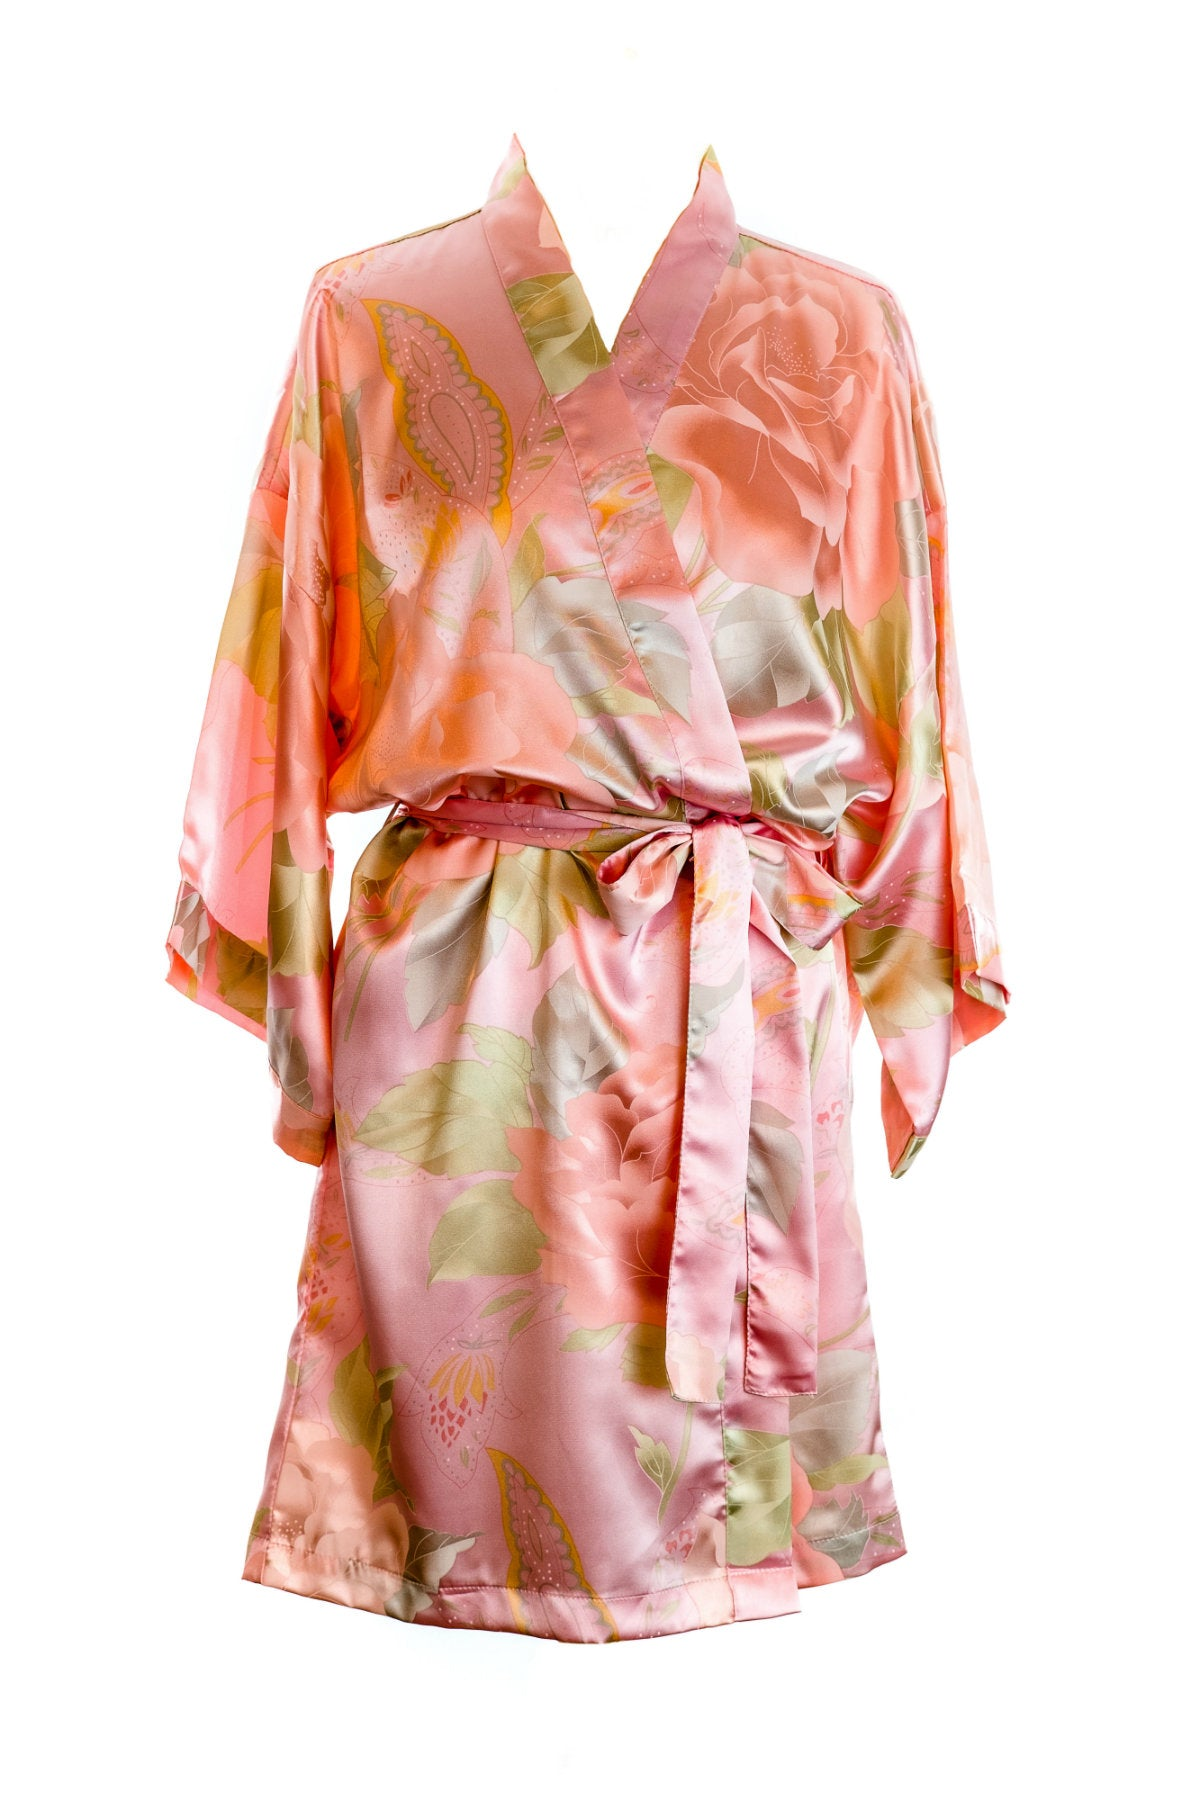 Pink Vintage Floral Satin Dressing Gown – The Bridal Outlet